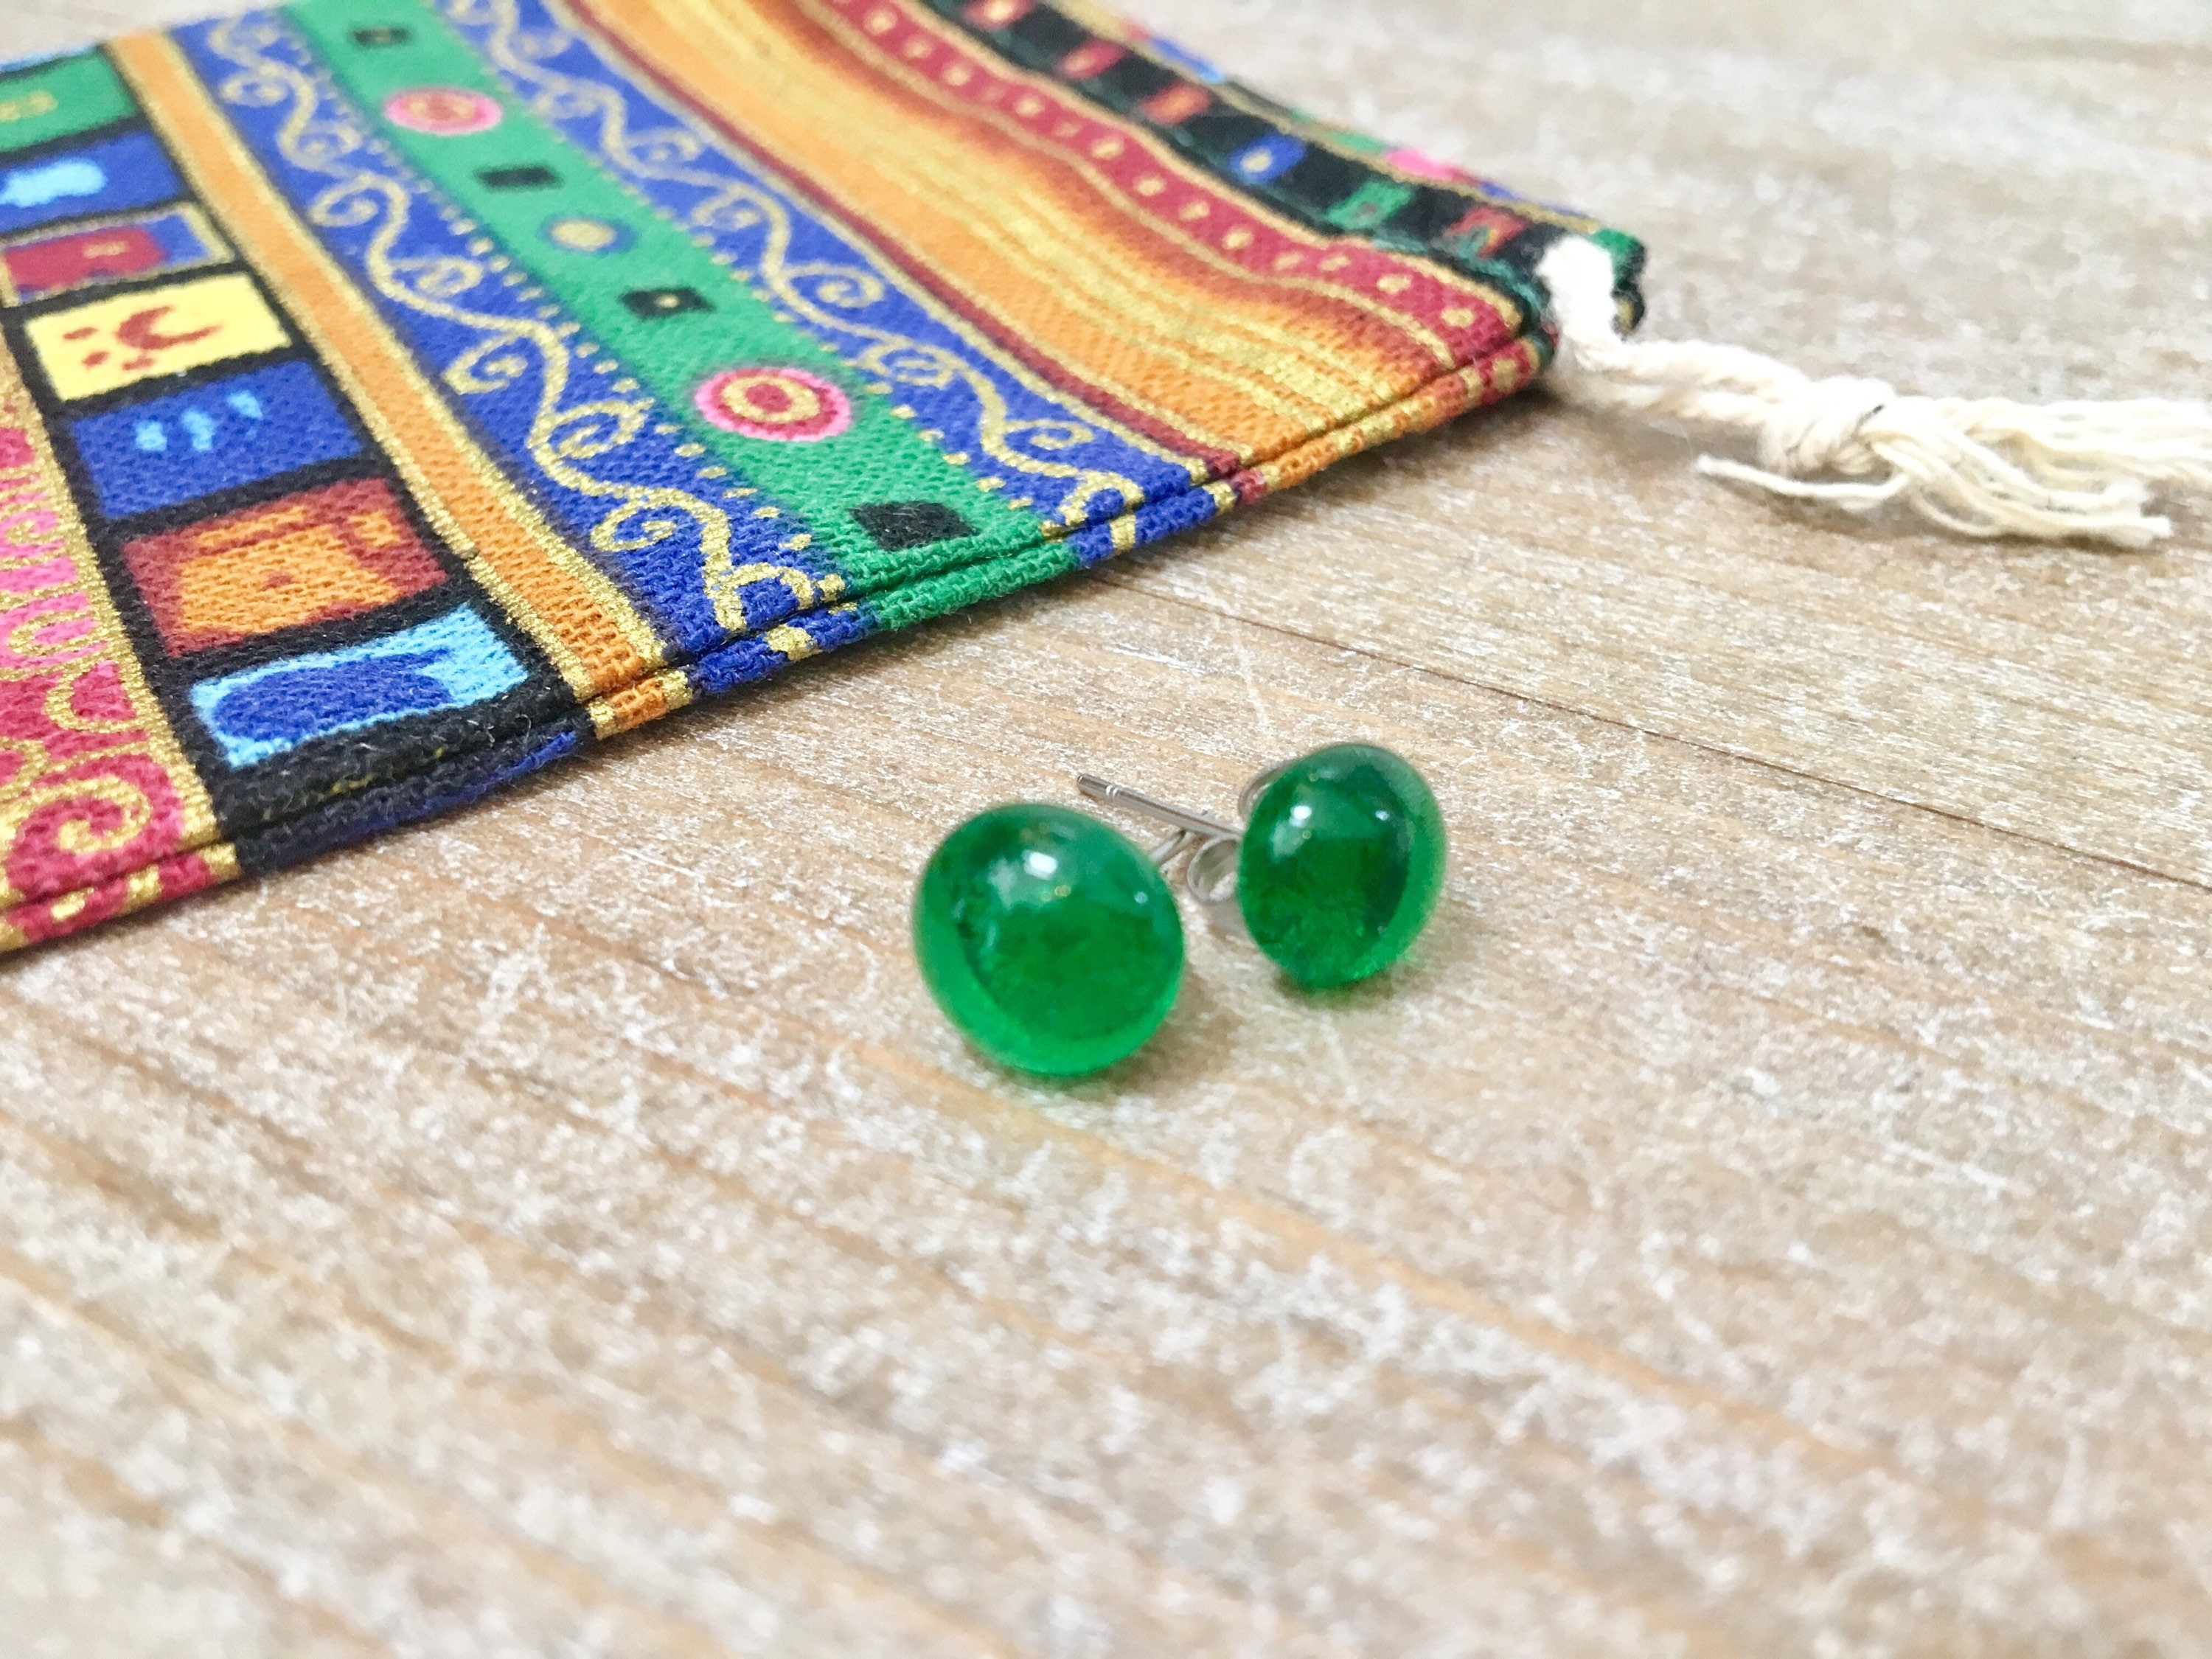 green triangular blue jewellry earing glass jewellery fresh stud earrings handmade